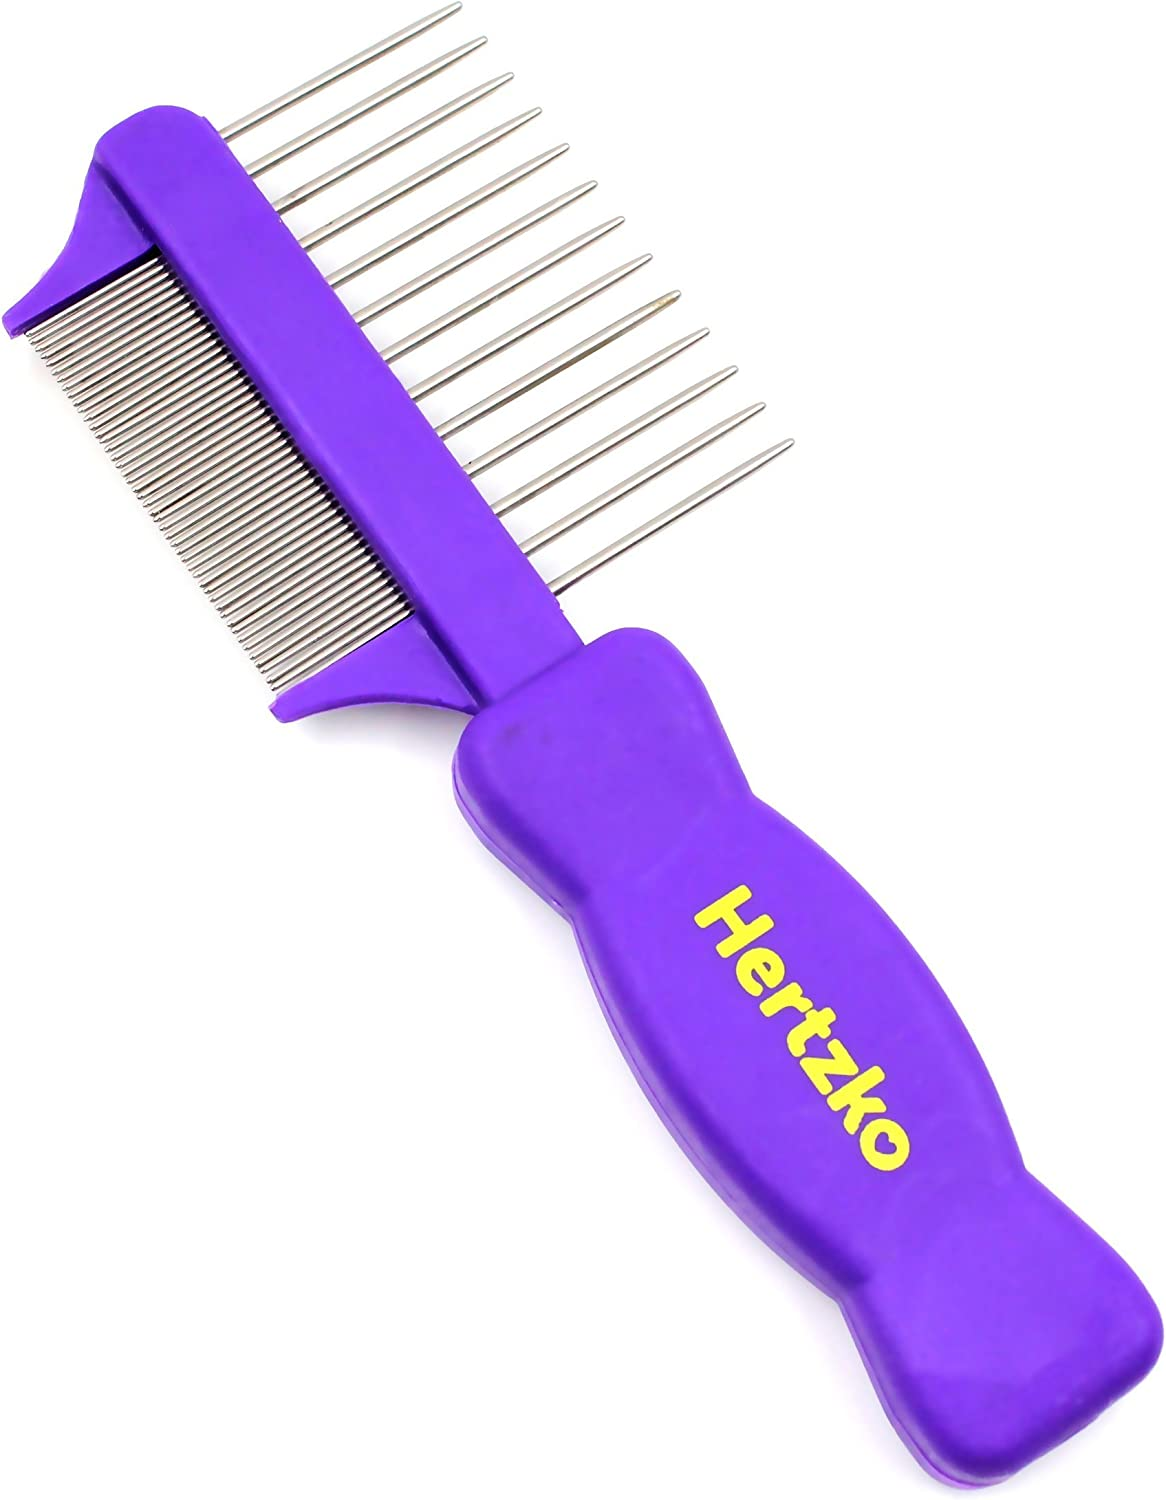 HERTZKO Double Sided Flea Comb Densely Packed Pins Removes Fleas, Flea Eggs, and Debris, and The Wider Spaced Pins Detangles and Loosens Dead Undercoat - Suitable for Dogs and Cats : Pet Supplies